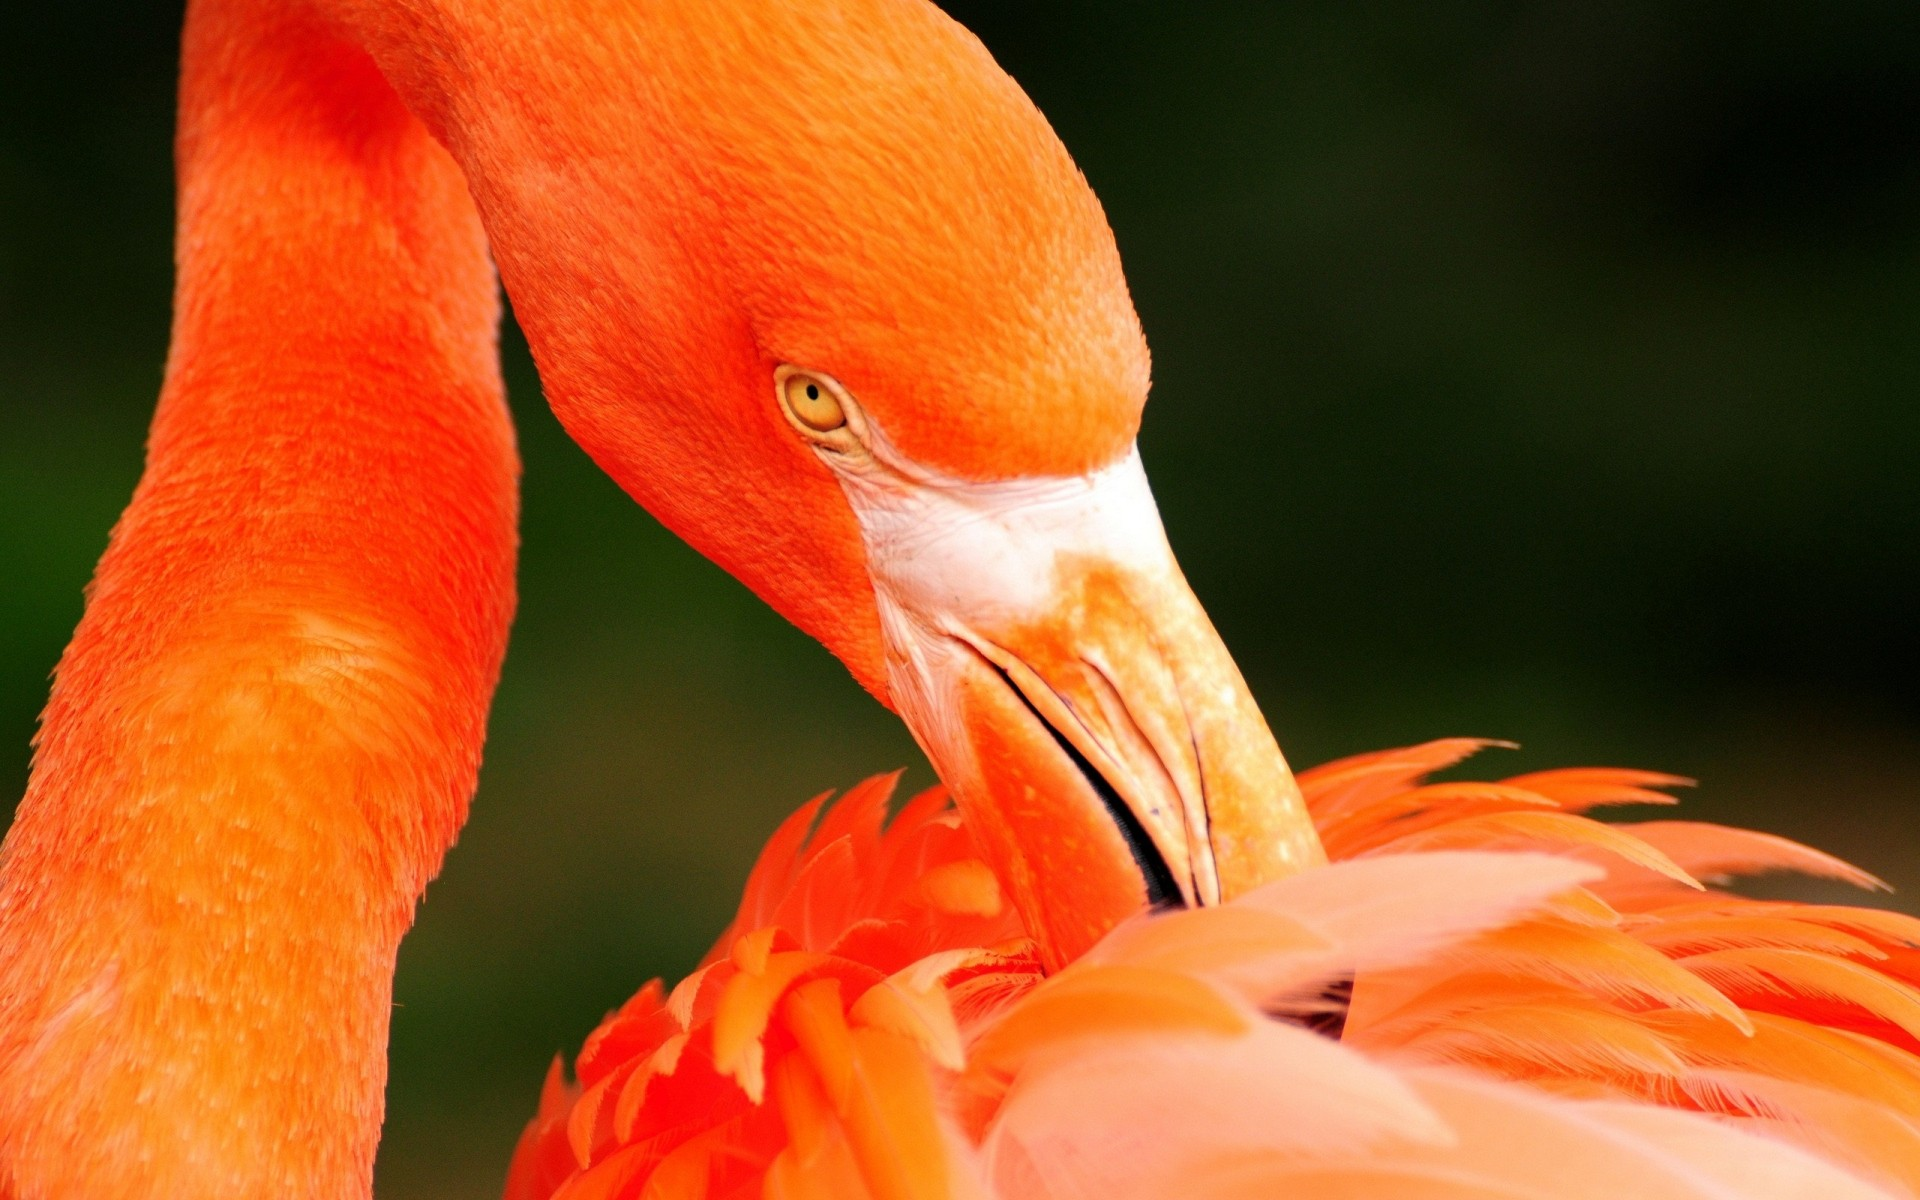 flamingo bird nature wildlife outdoors beak one feather tropical animal zoo